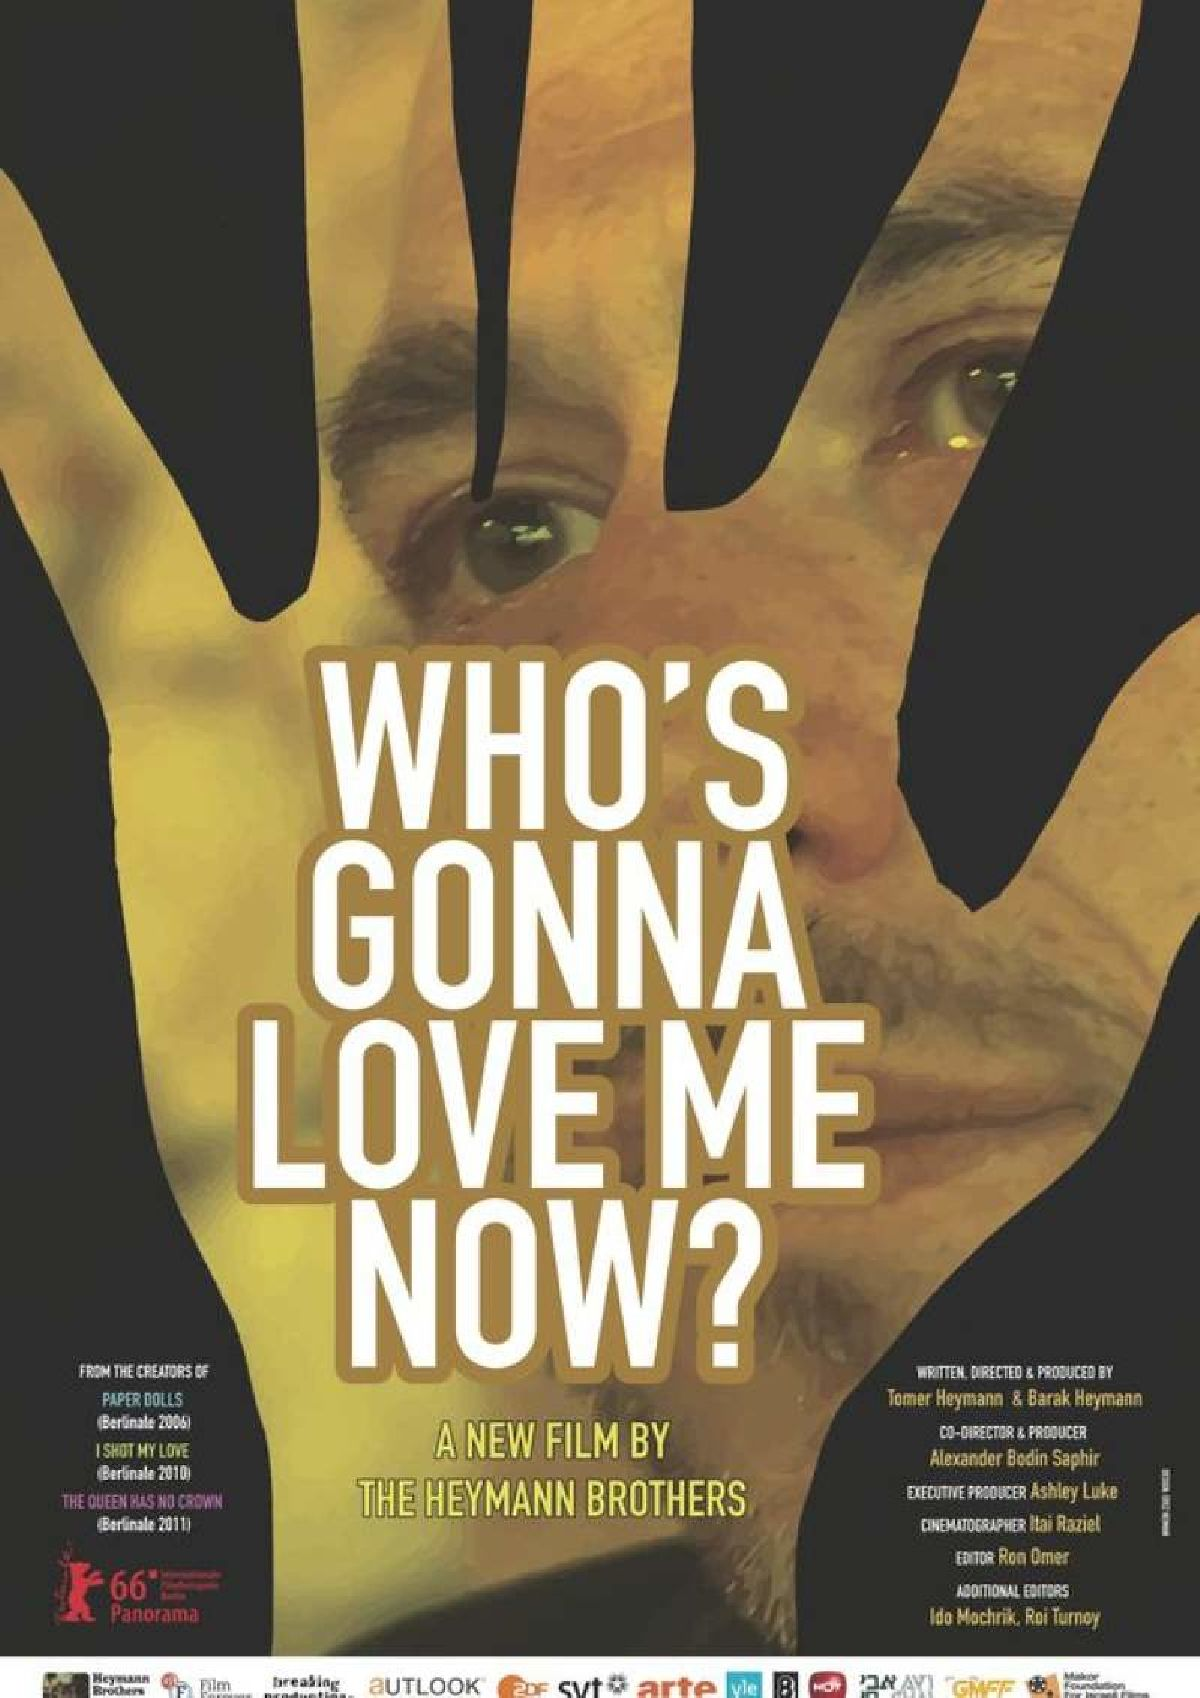 'Who's Gonna Love Me Now?' movie poster